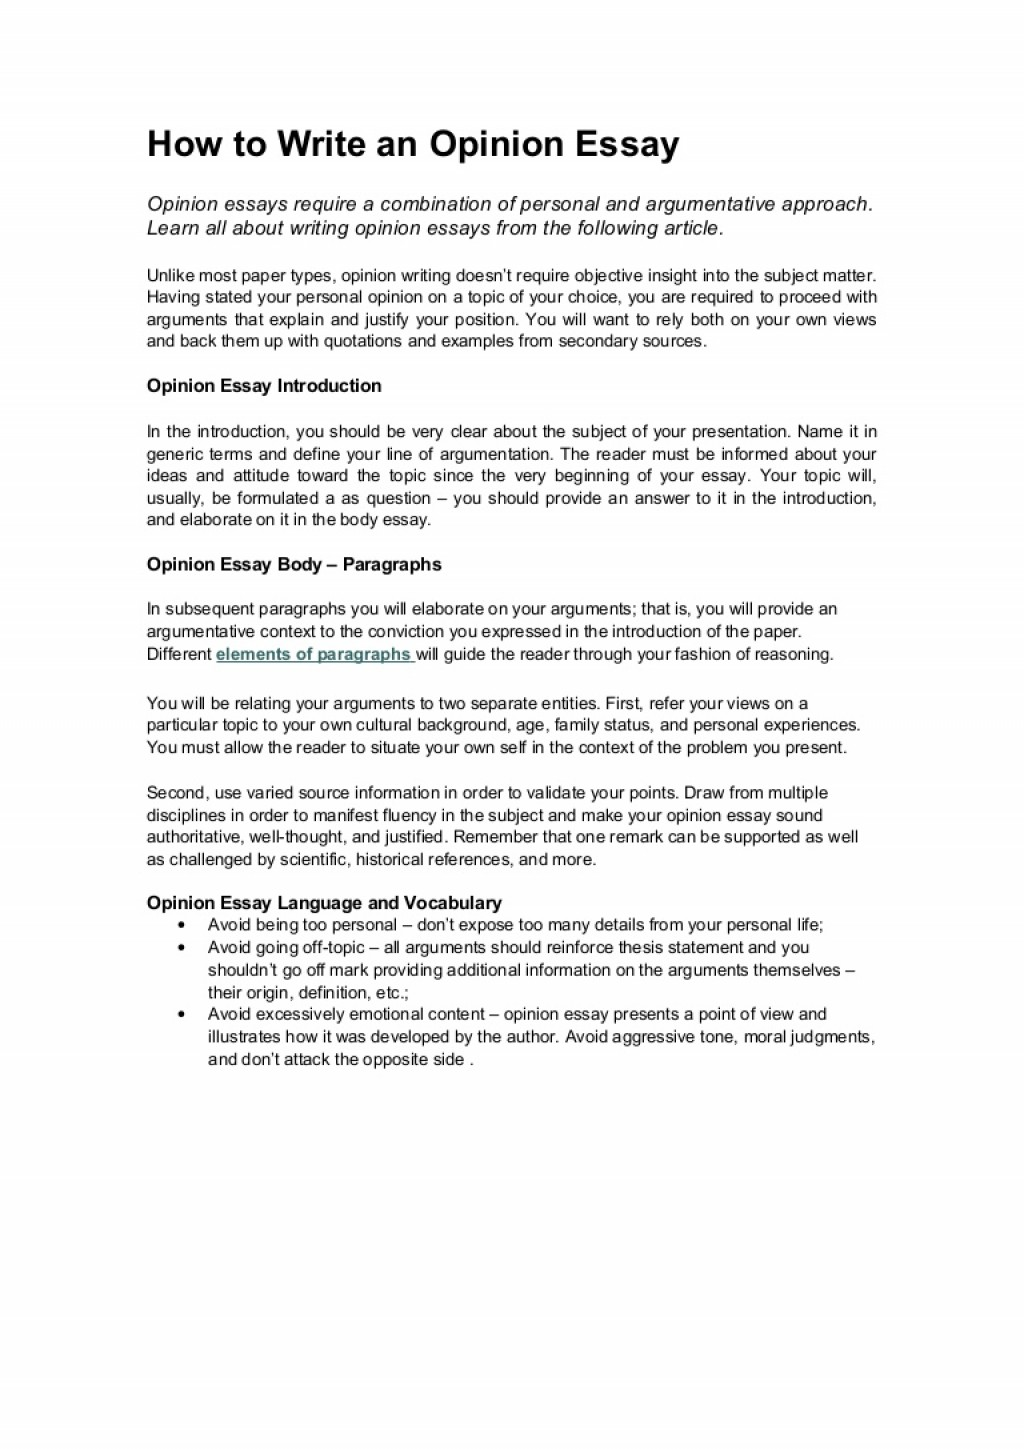 009 Howtowriteanopinionessay Lva1 App6891 Thumbnail Essay Example About Marvelous Immigration In Canada Causes The United States Large